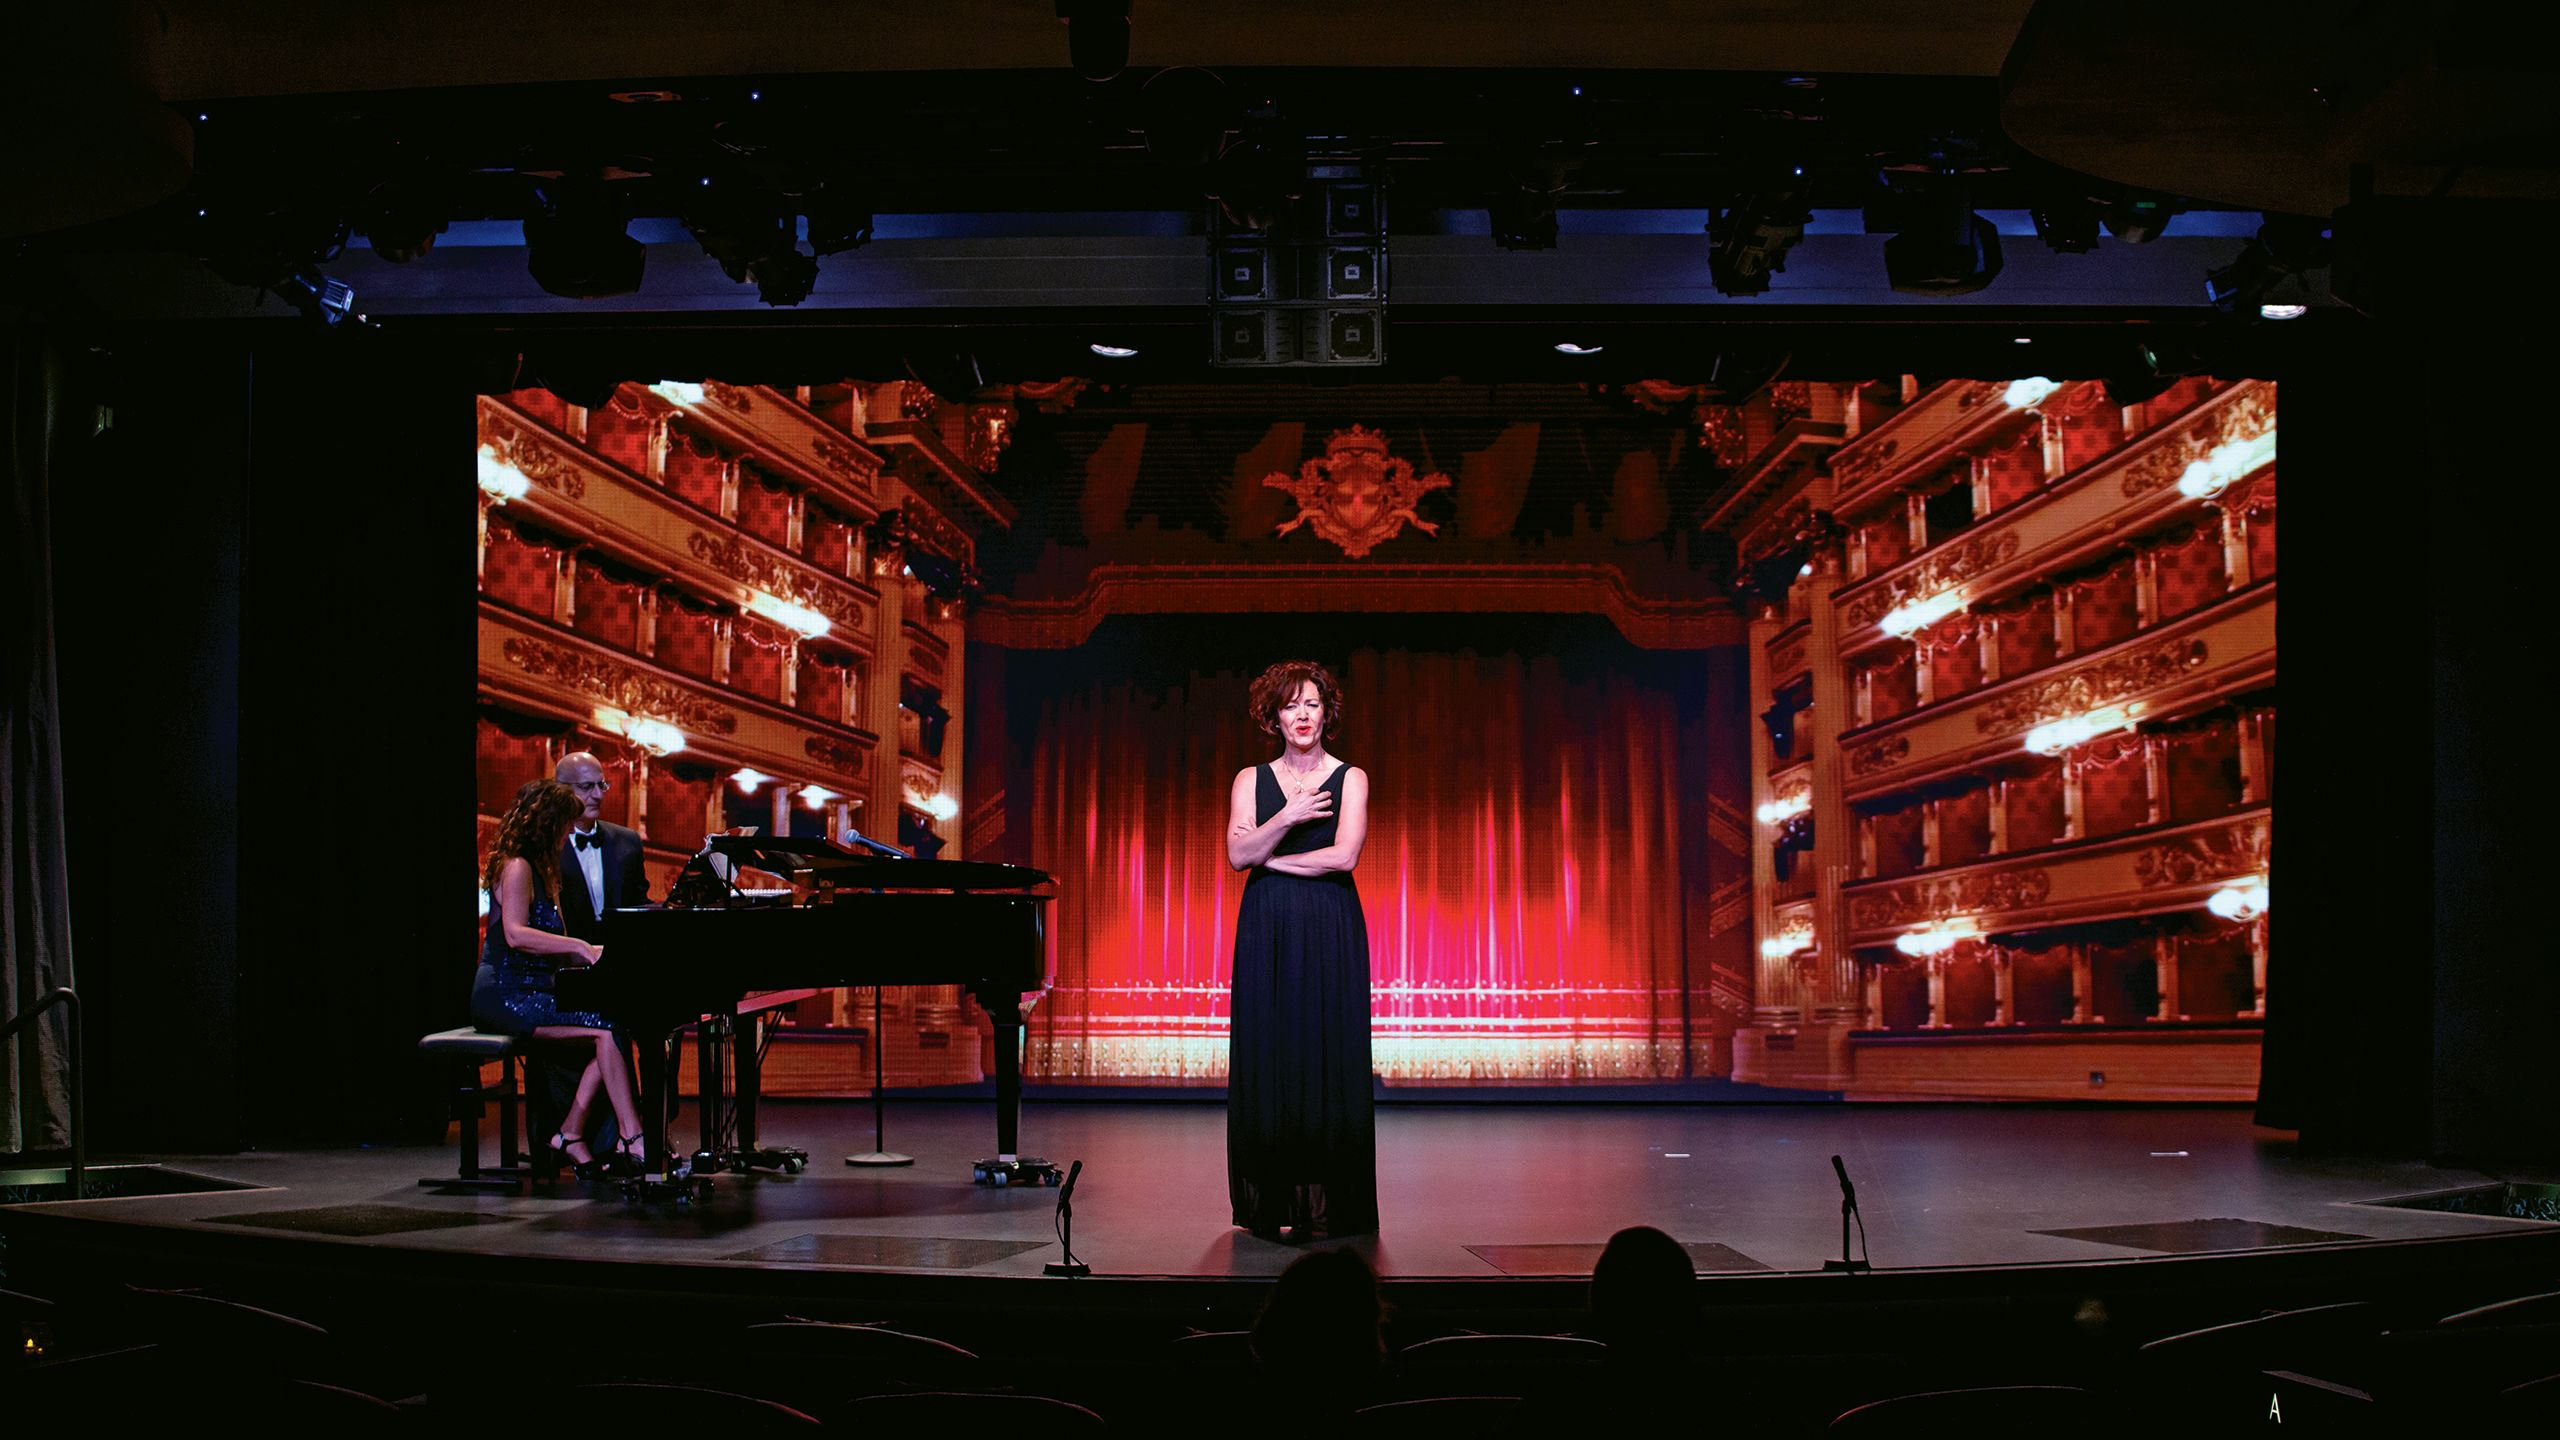 One of Viking Cruises' cultural partners is the Metropolitan Opera.